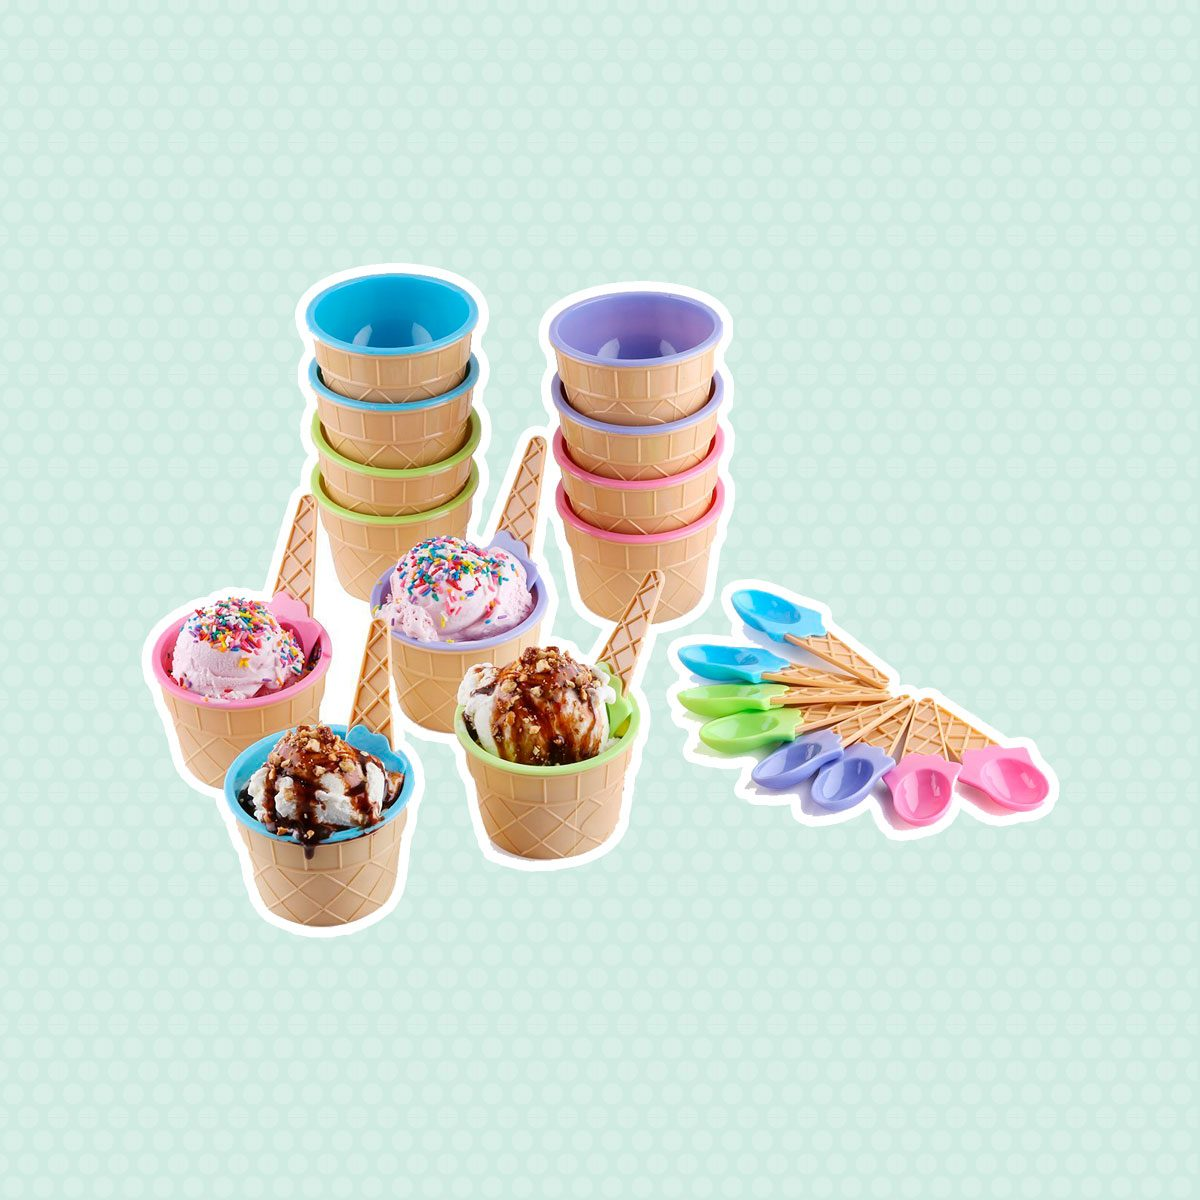 Greenco Vibrant Colors Dessert Bowls and Spoons